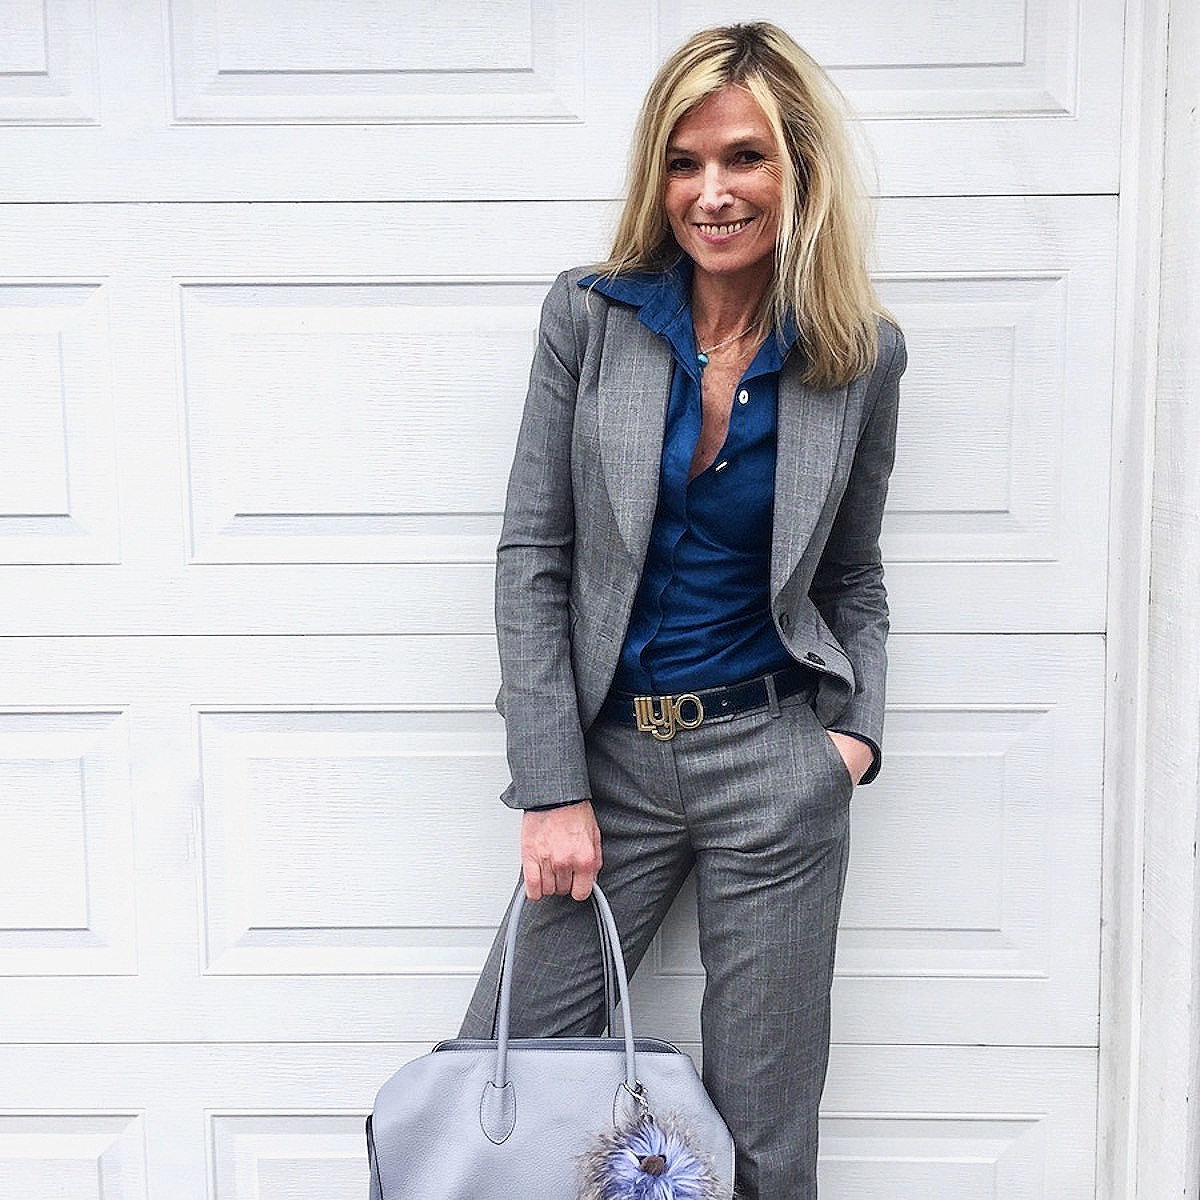 Dress for Success Seattle - How I give back as a personal stylist